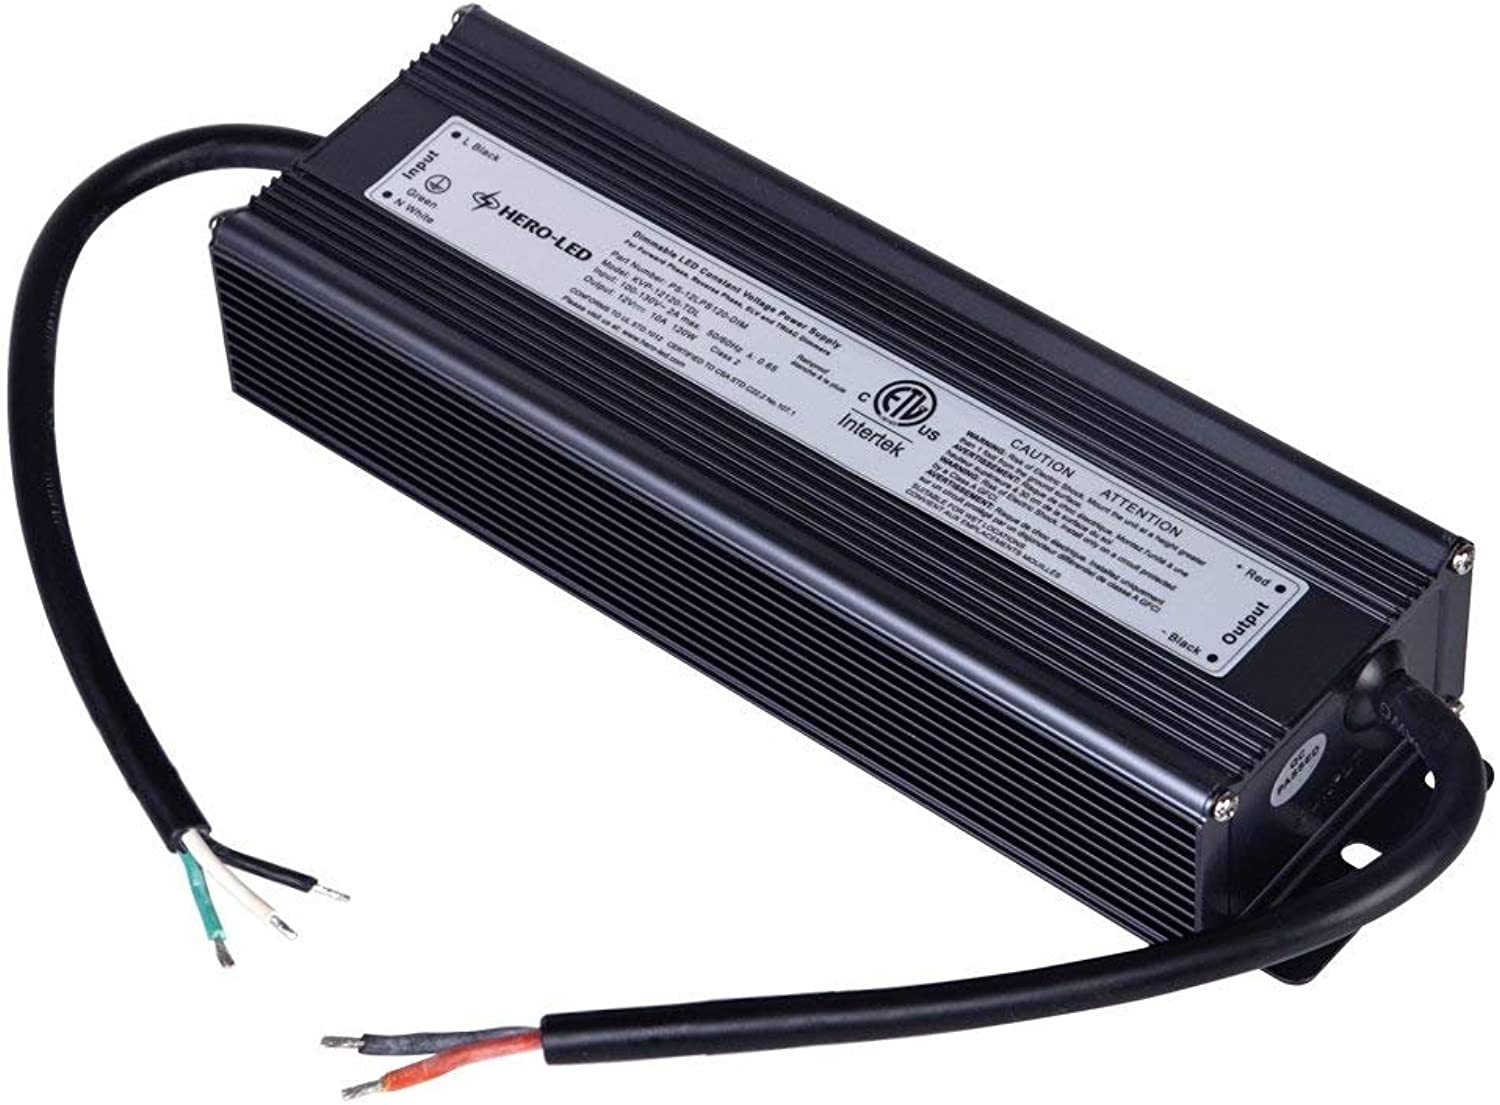 HERO-LED PS-12LPS120-DIM ETL-listed Dimmable LED Constant Voltage Power Supply - Dimmble LED Transformer 12V DC, 10A, 120W